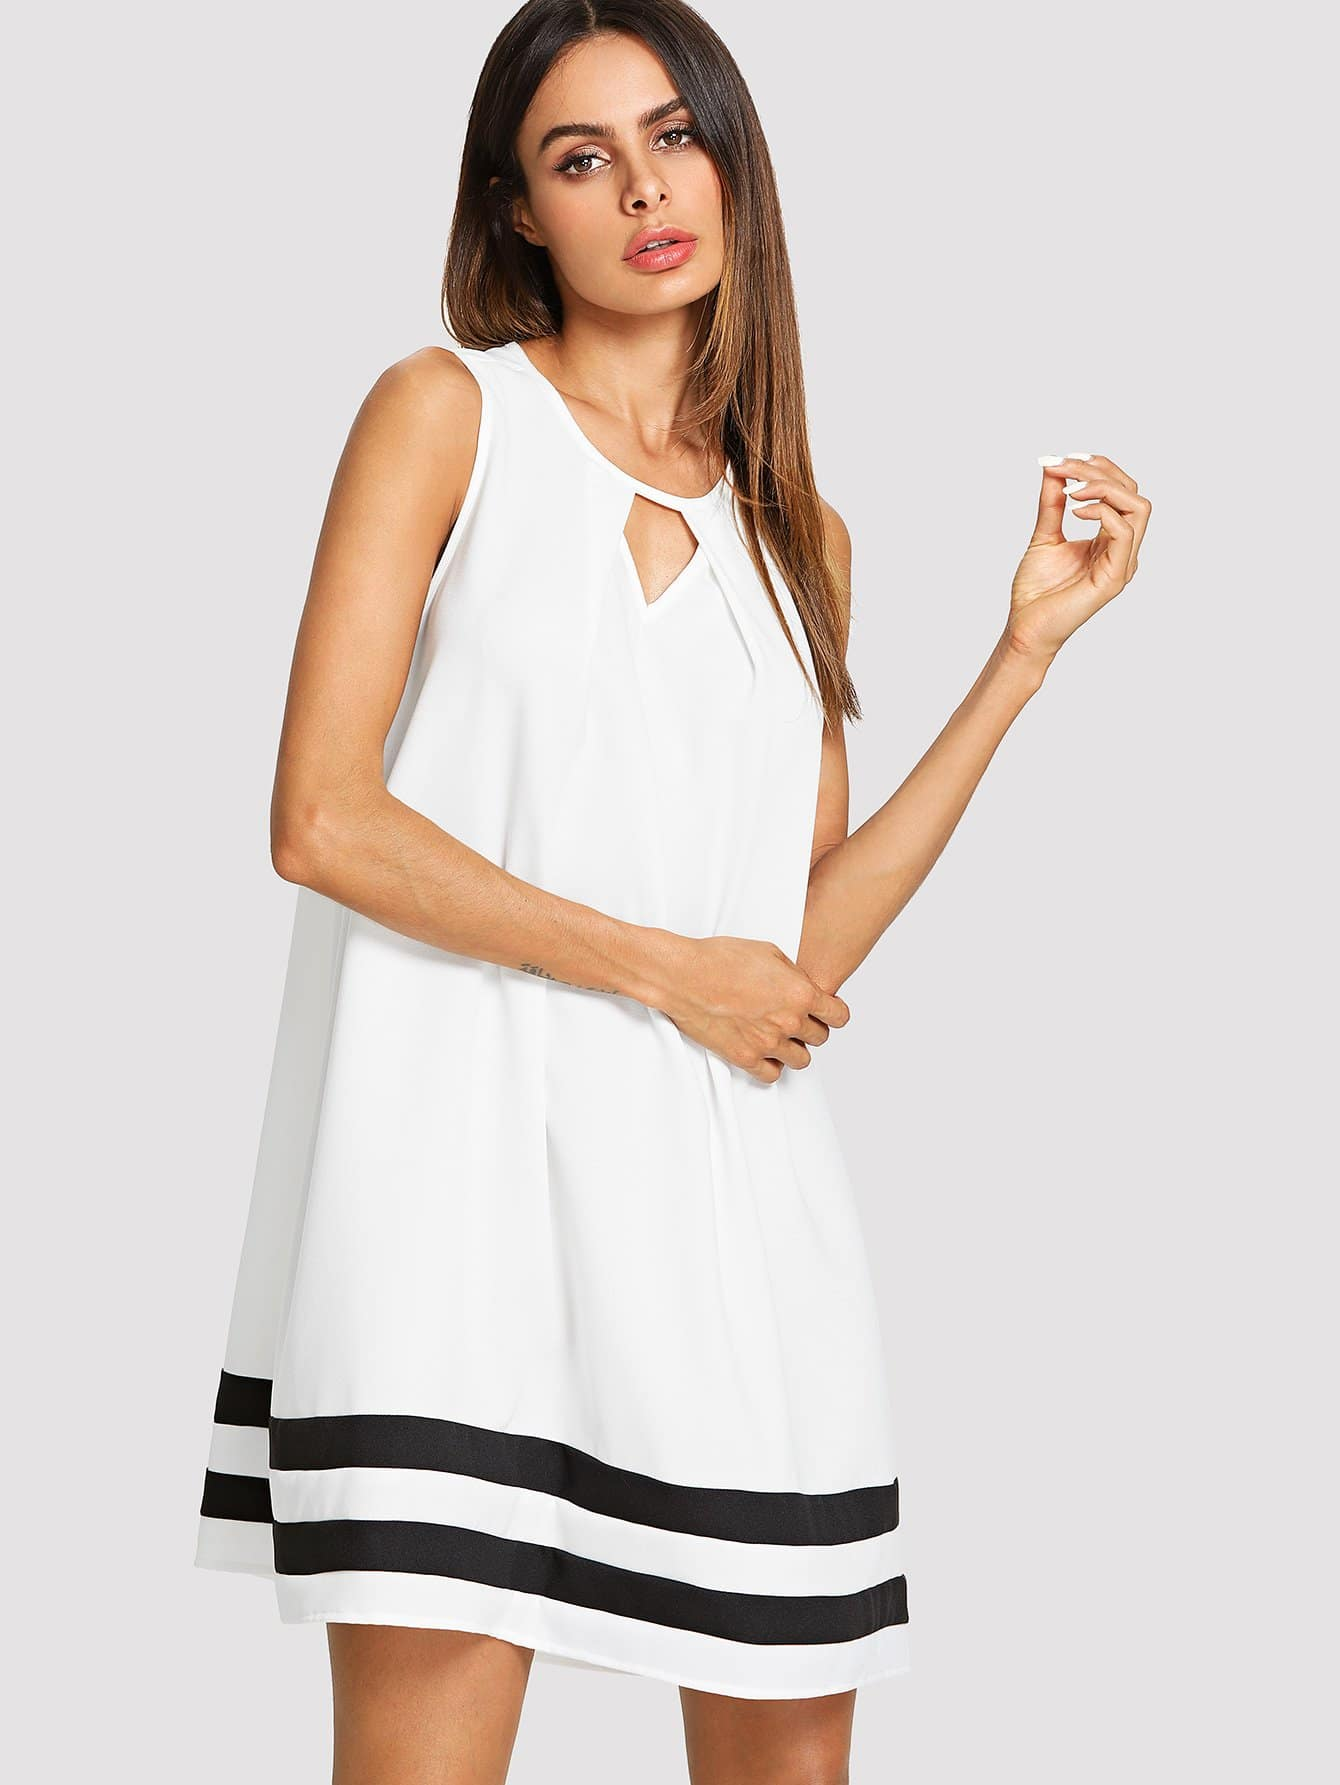 Cut Out Front Contrast Tape Dress contrast collar foldover front dress